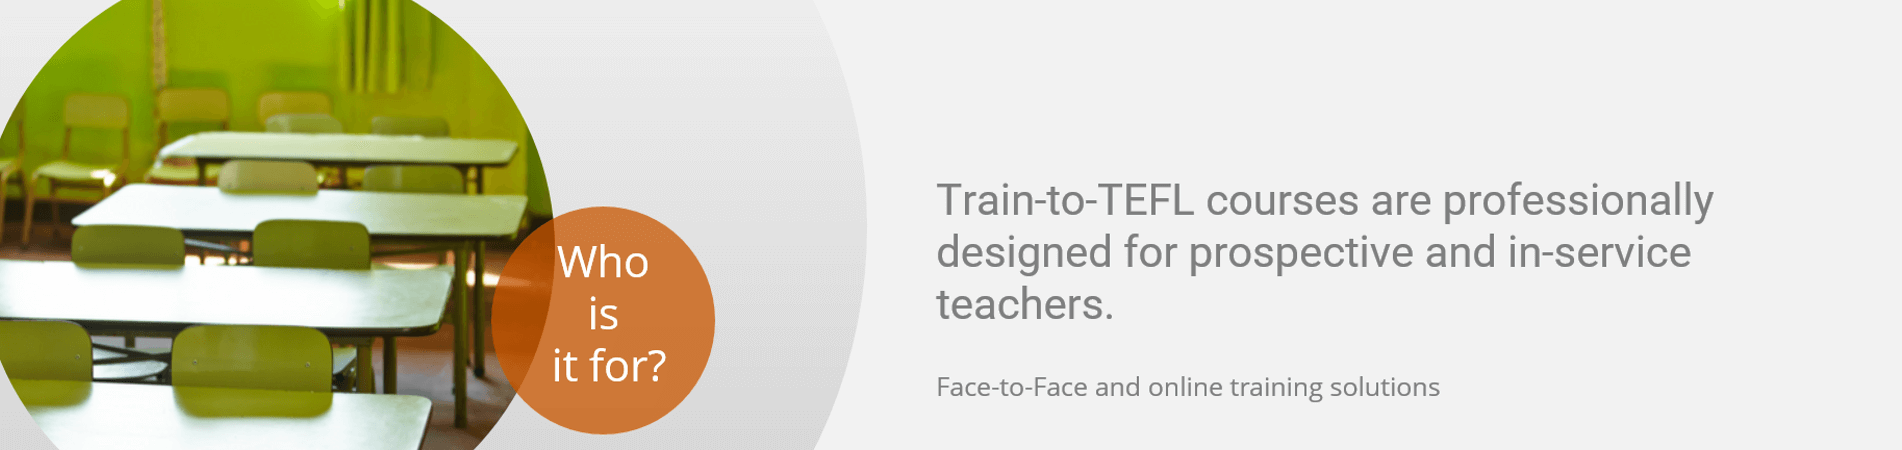 who is train to tefl for banner